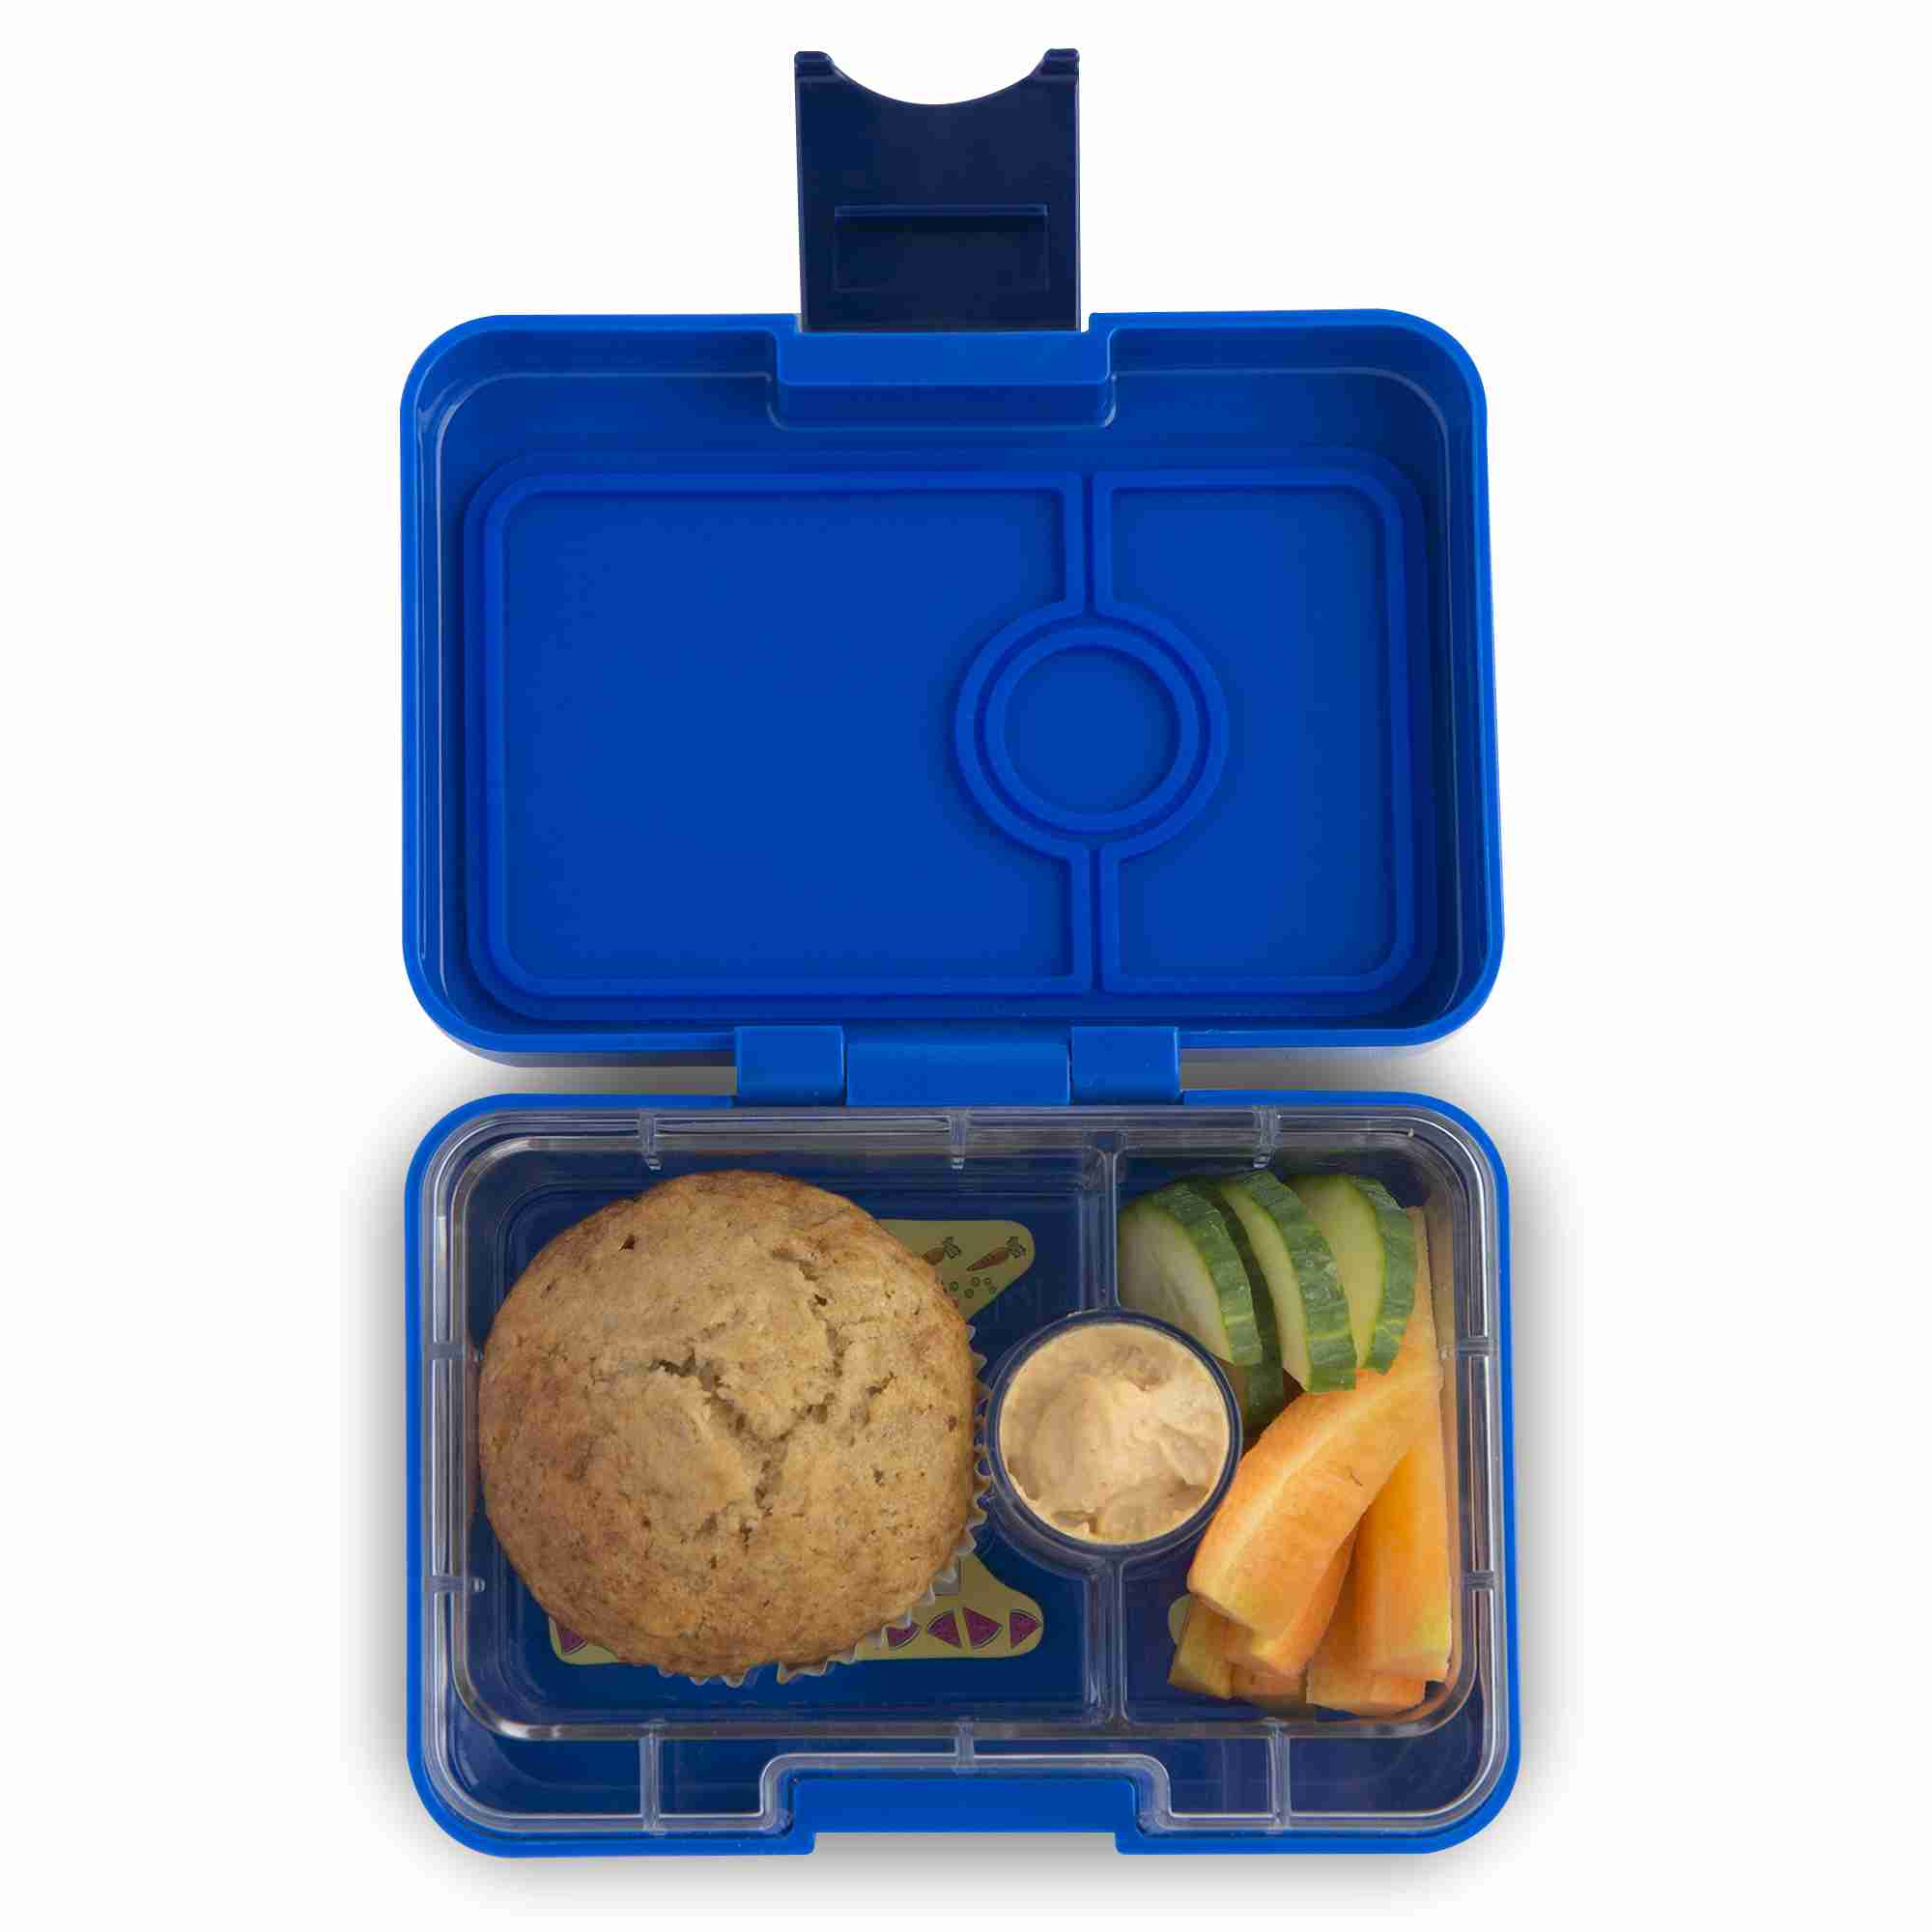 Yumbox MiniSnack - Neptune Blue - Open With Food